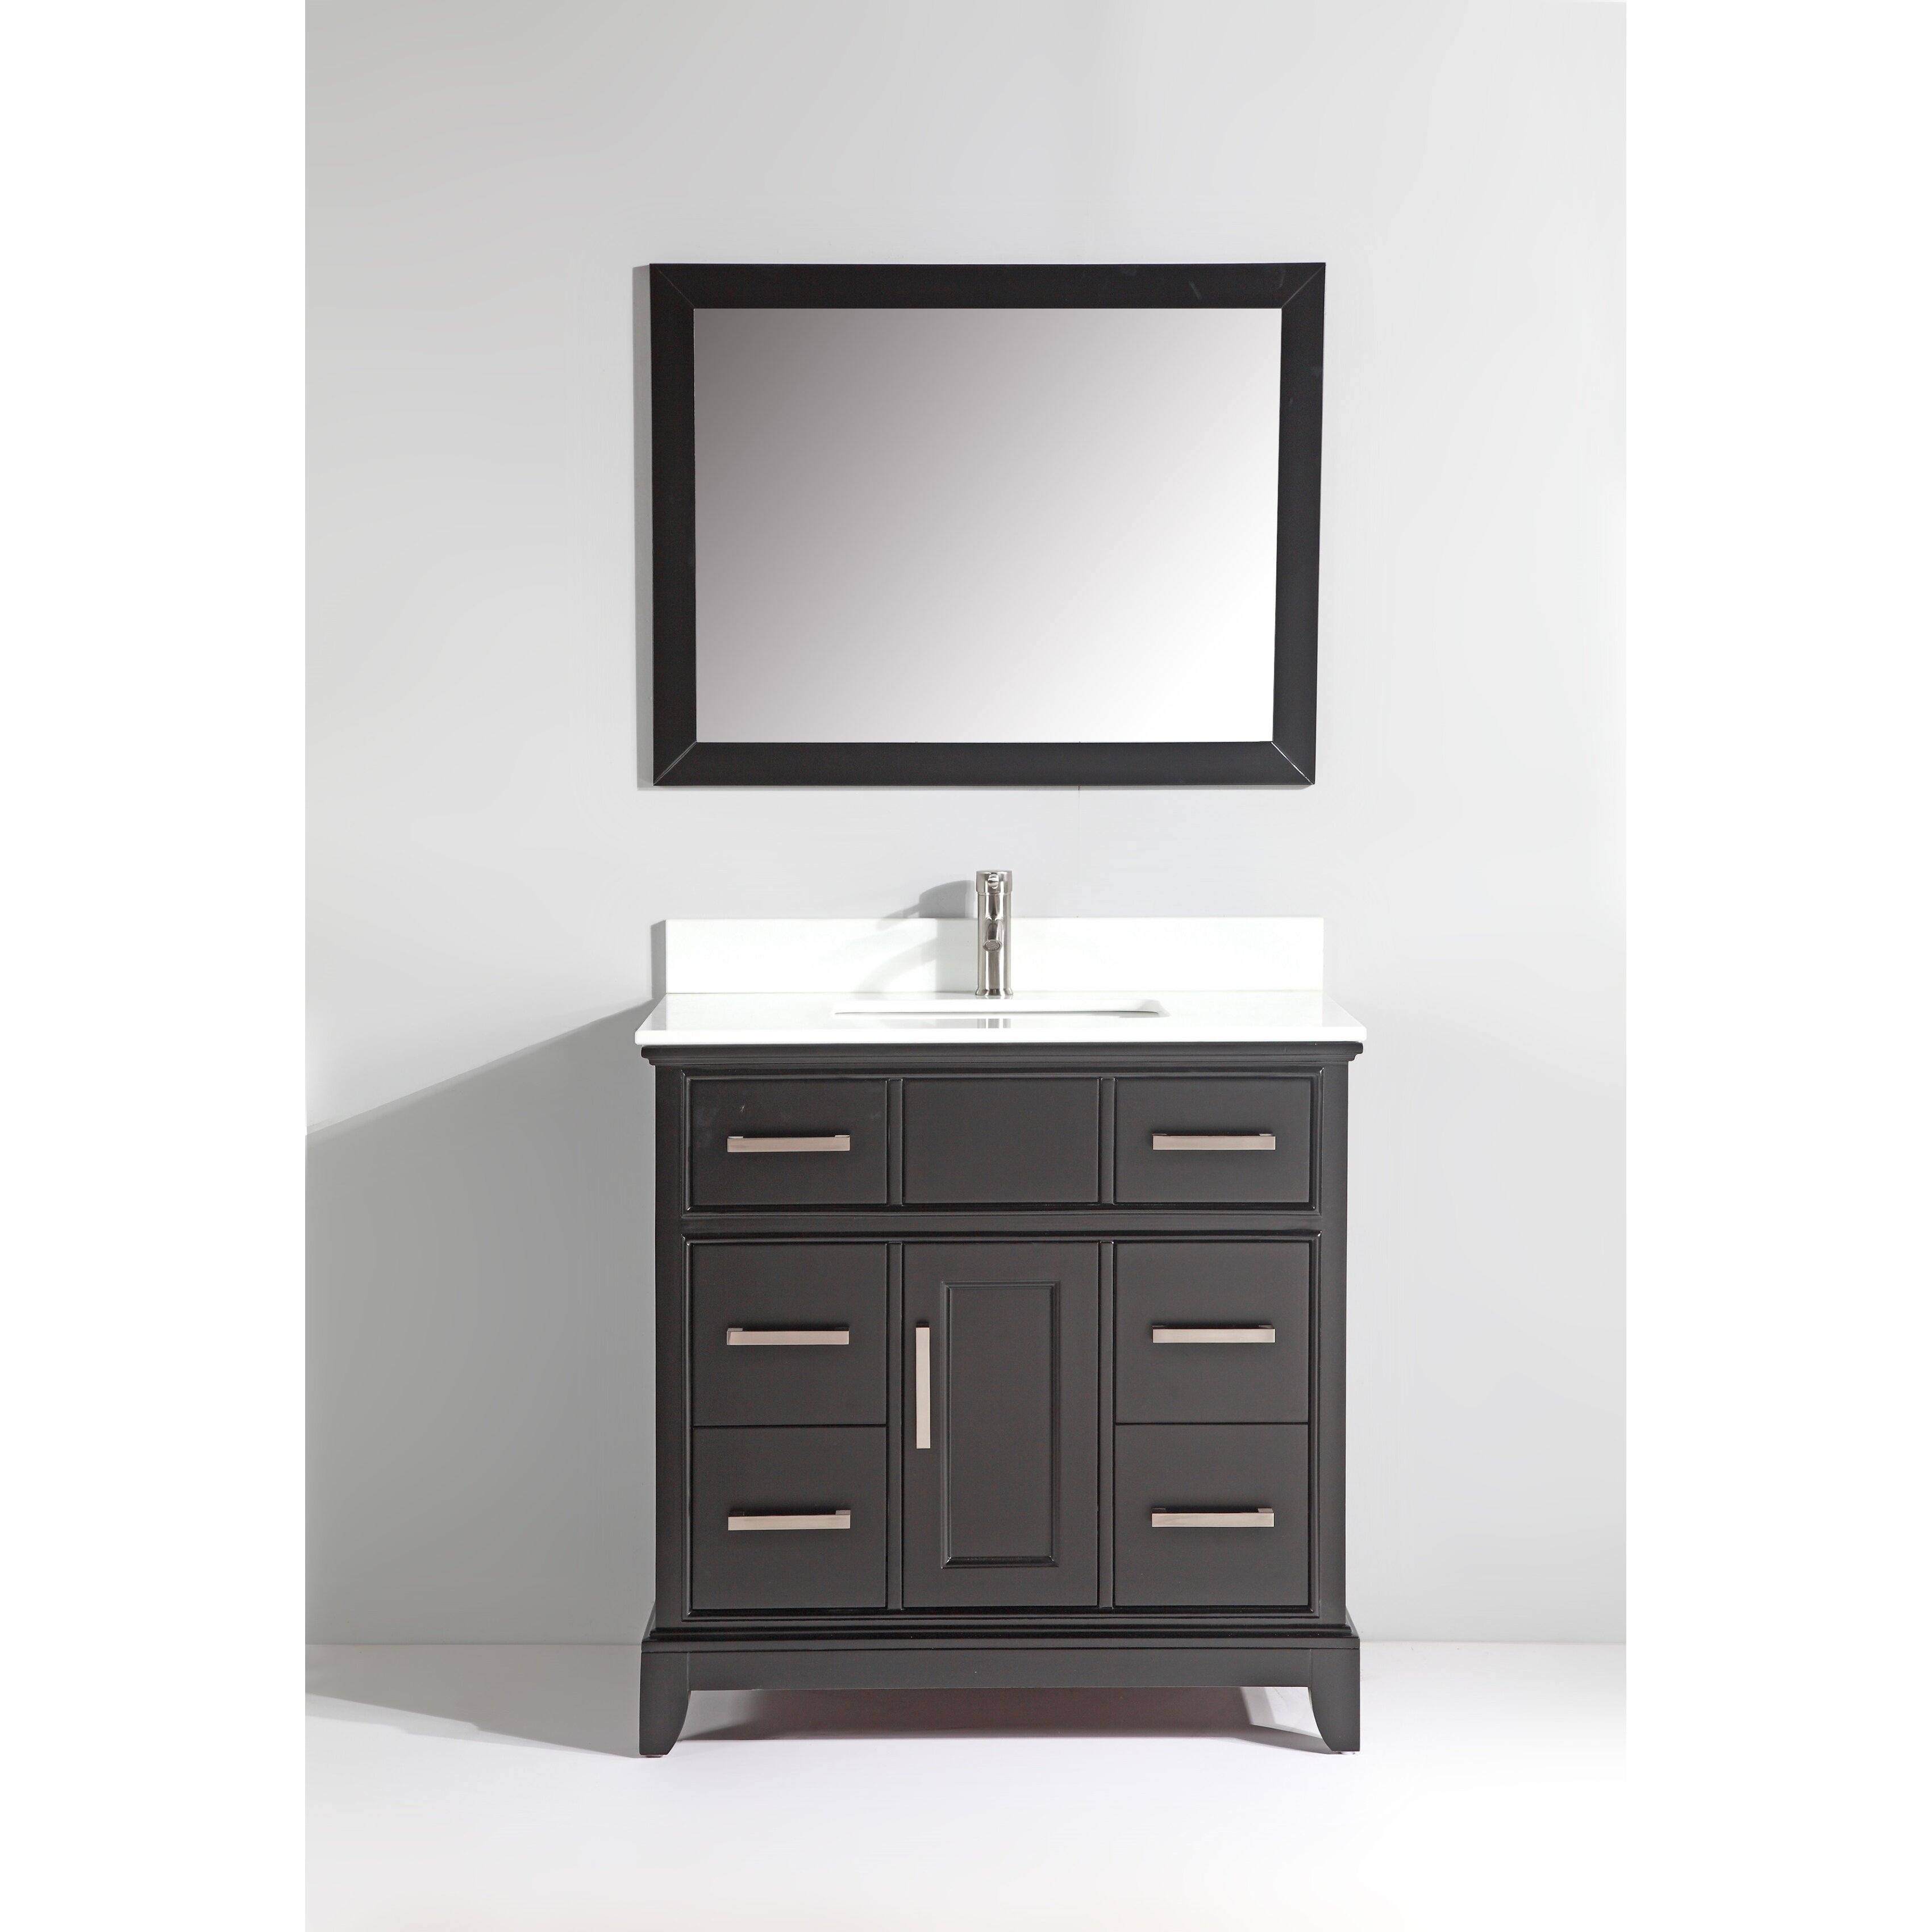 Bathroom Single Vanity Vanity Art Phoenix Stone 36 Single Bathroom Vanity With Mirror